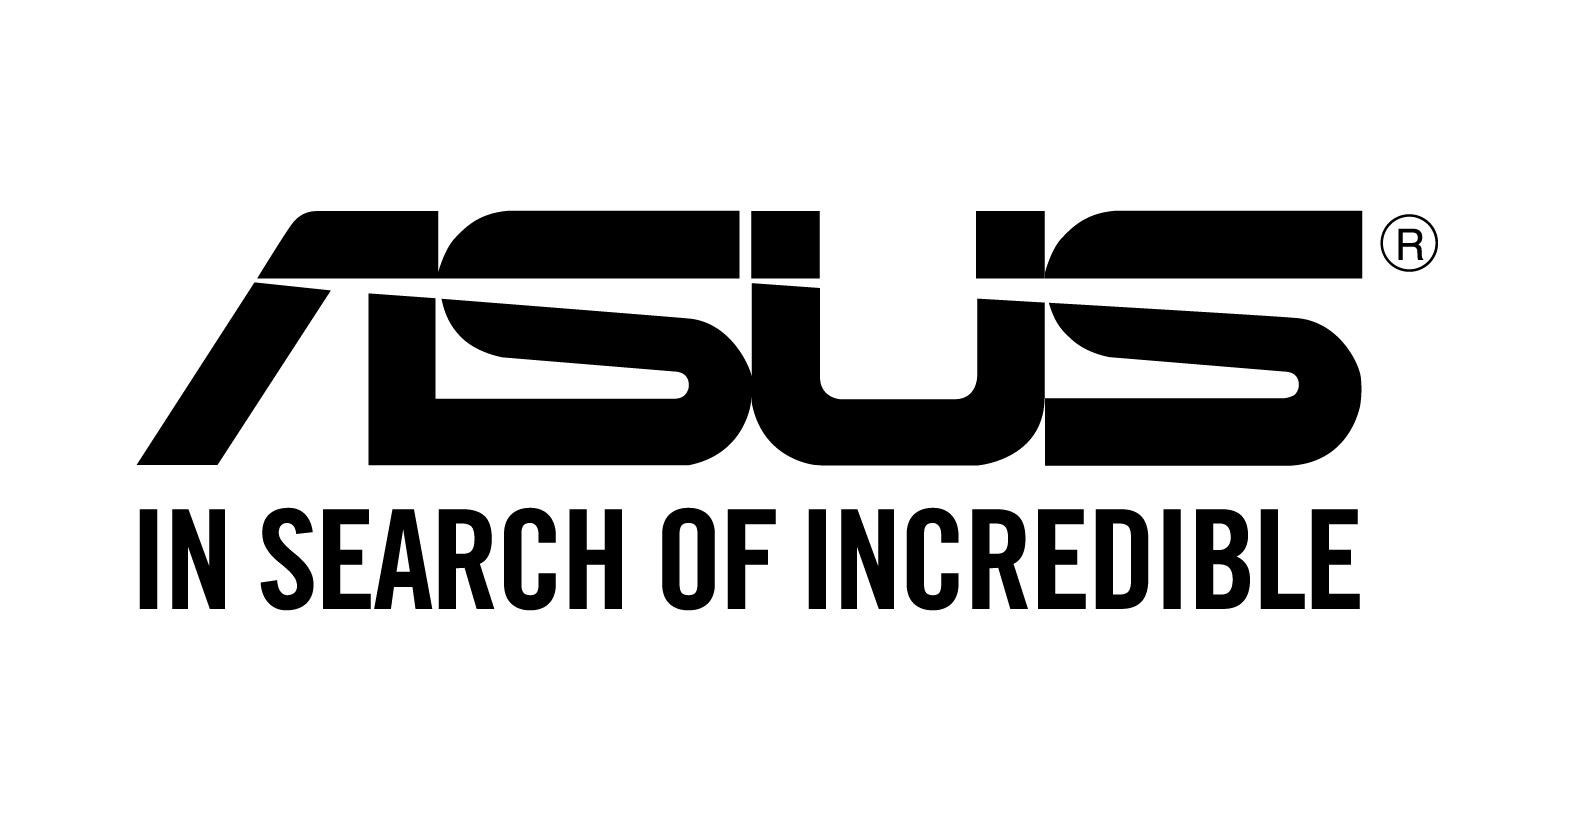 Asus phones getting android update